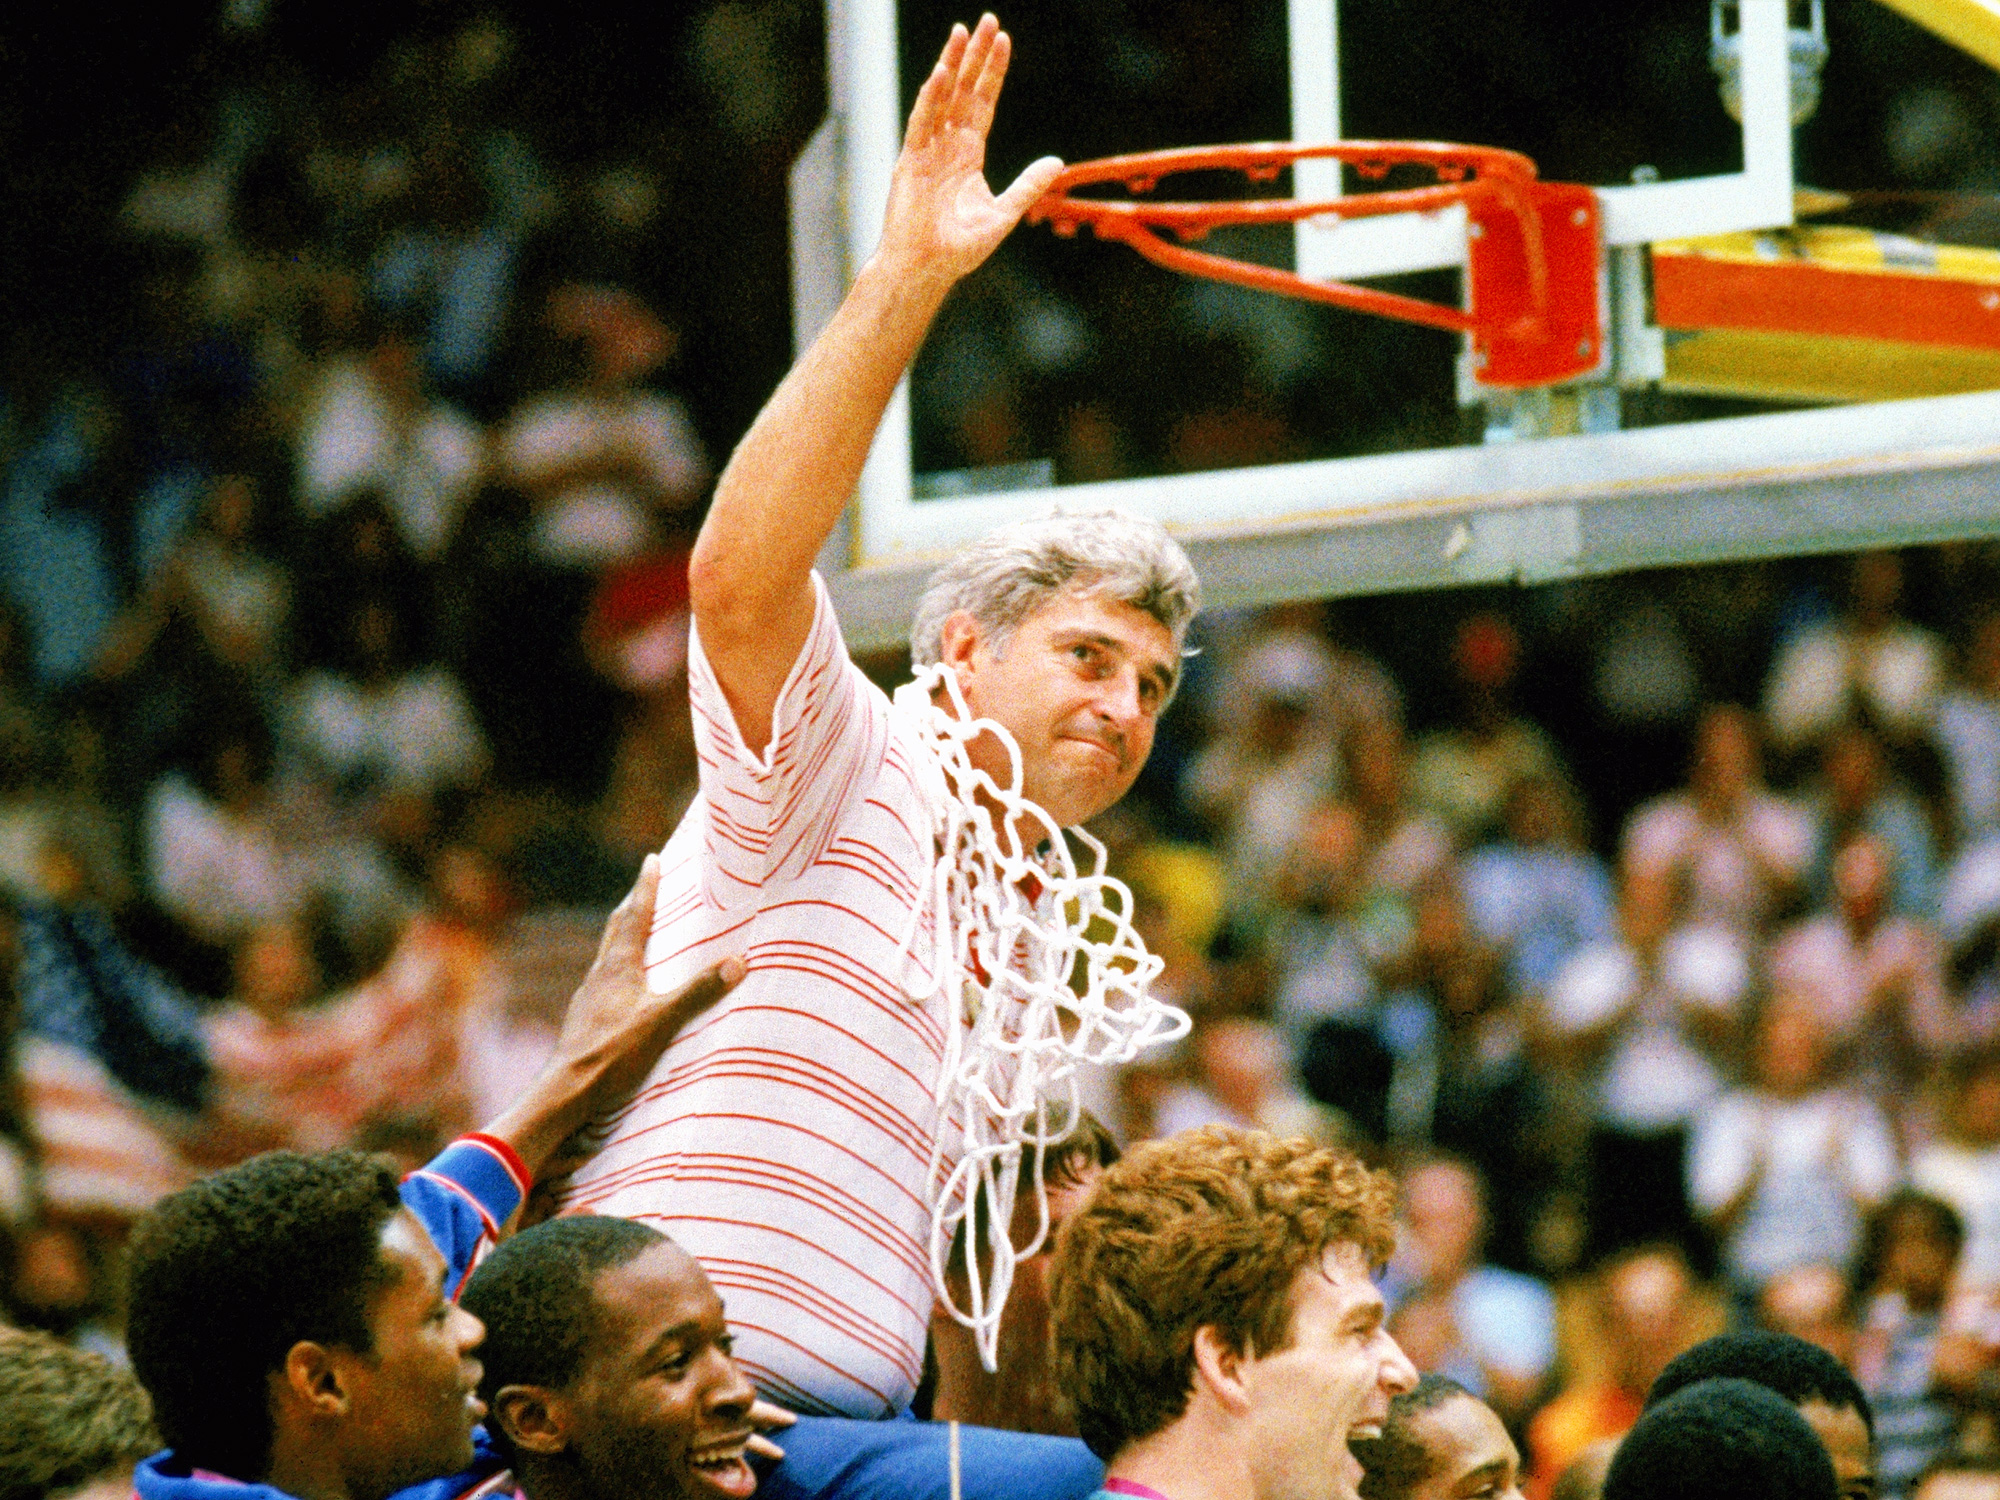 Bobby knight throwing chair gif - Bobby Knight Chair Gif Bobby Knight Throwing Chair Gif 16 Download